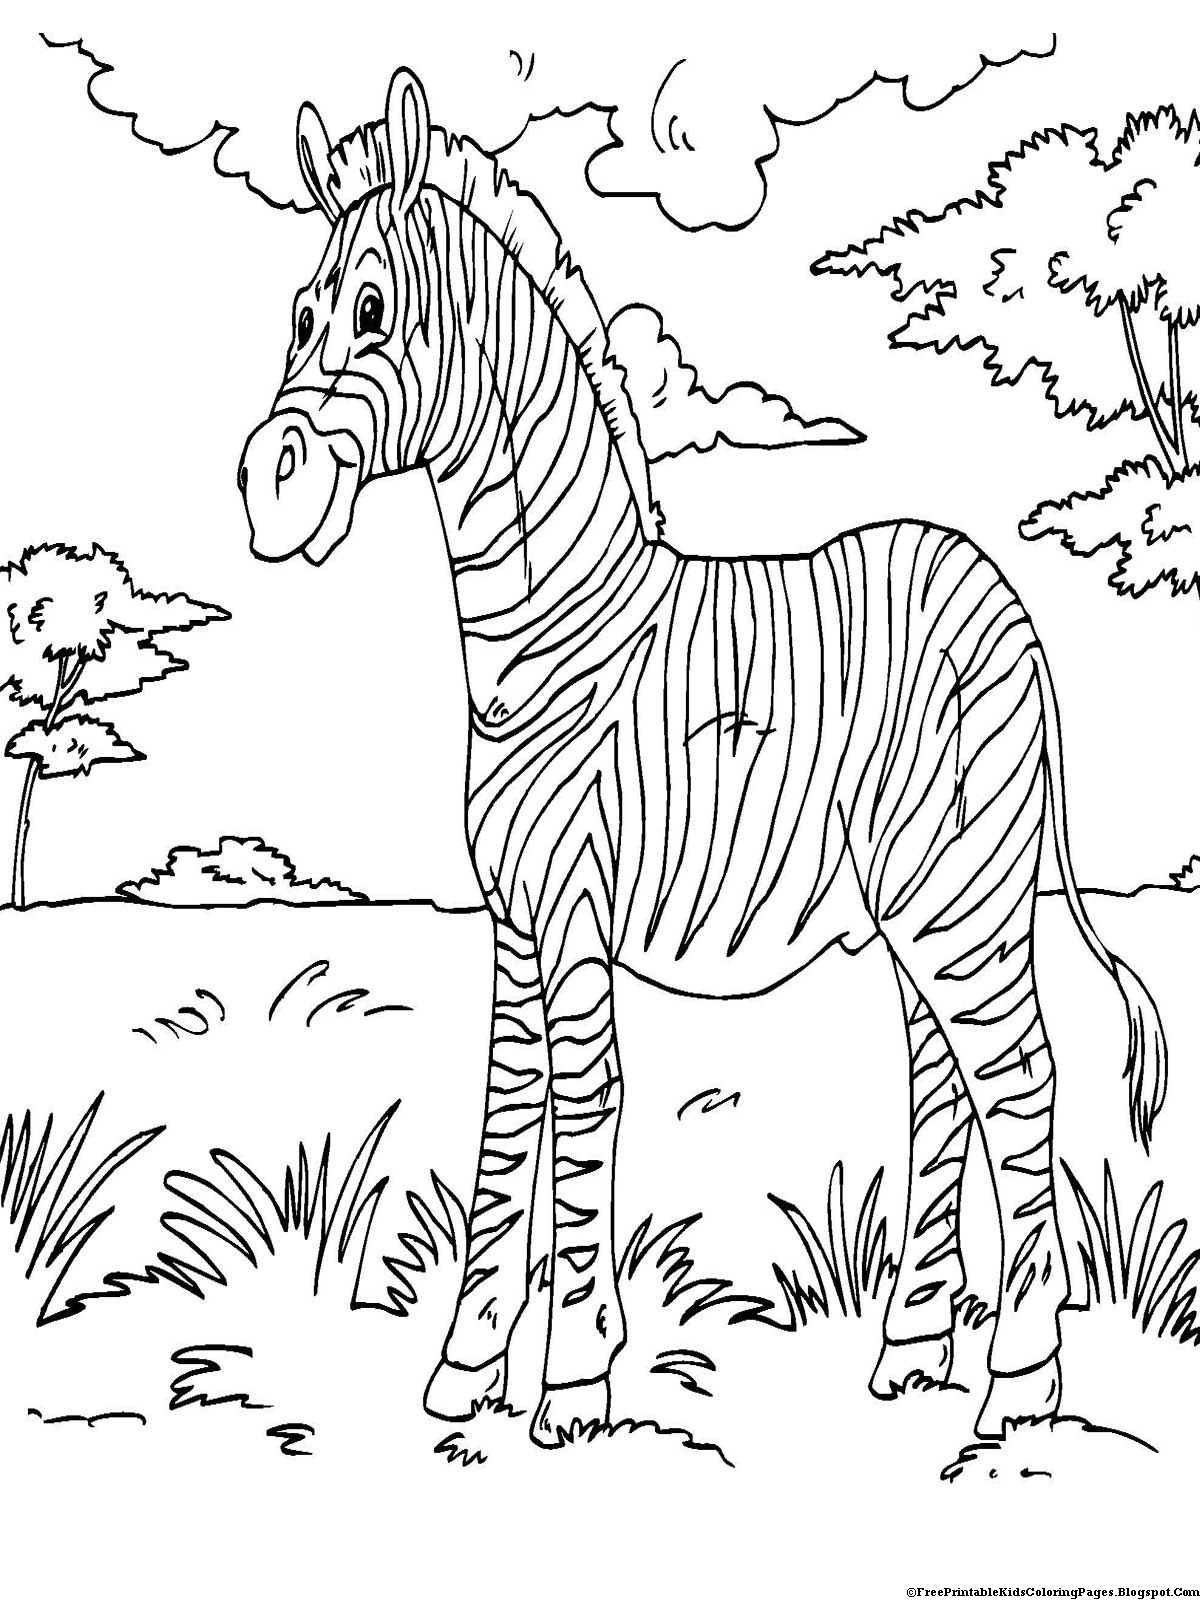 coloring pages to color online zebra coloring pages free printable kids coloring pages coloring to color online pages